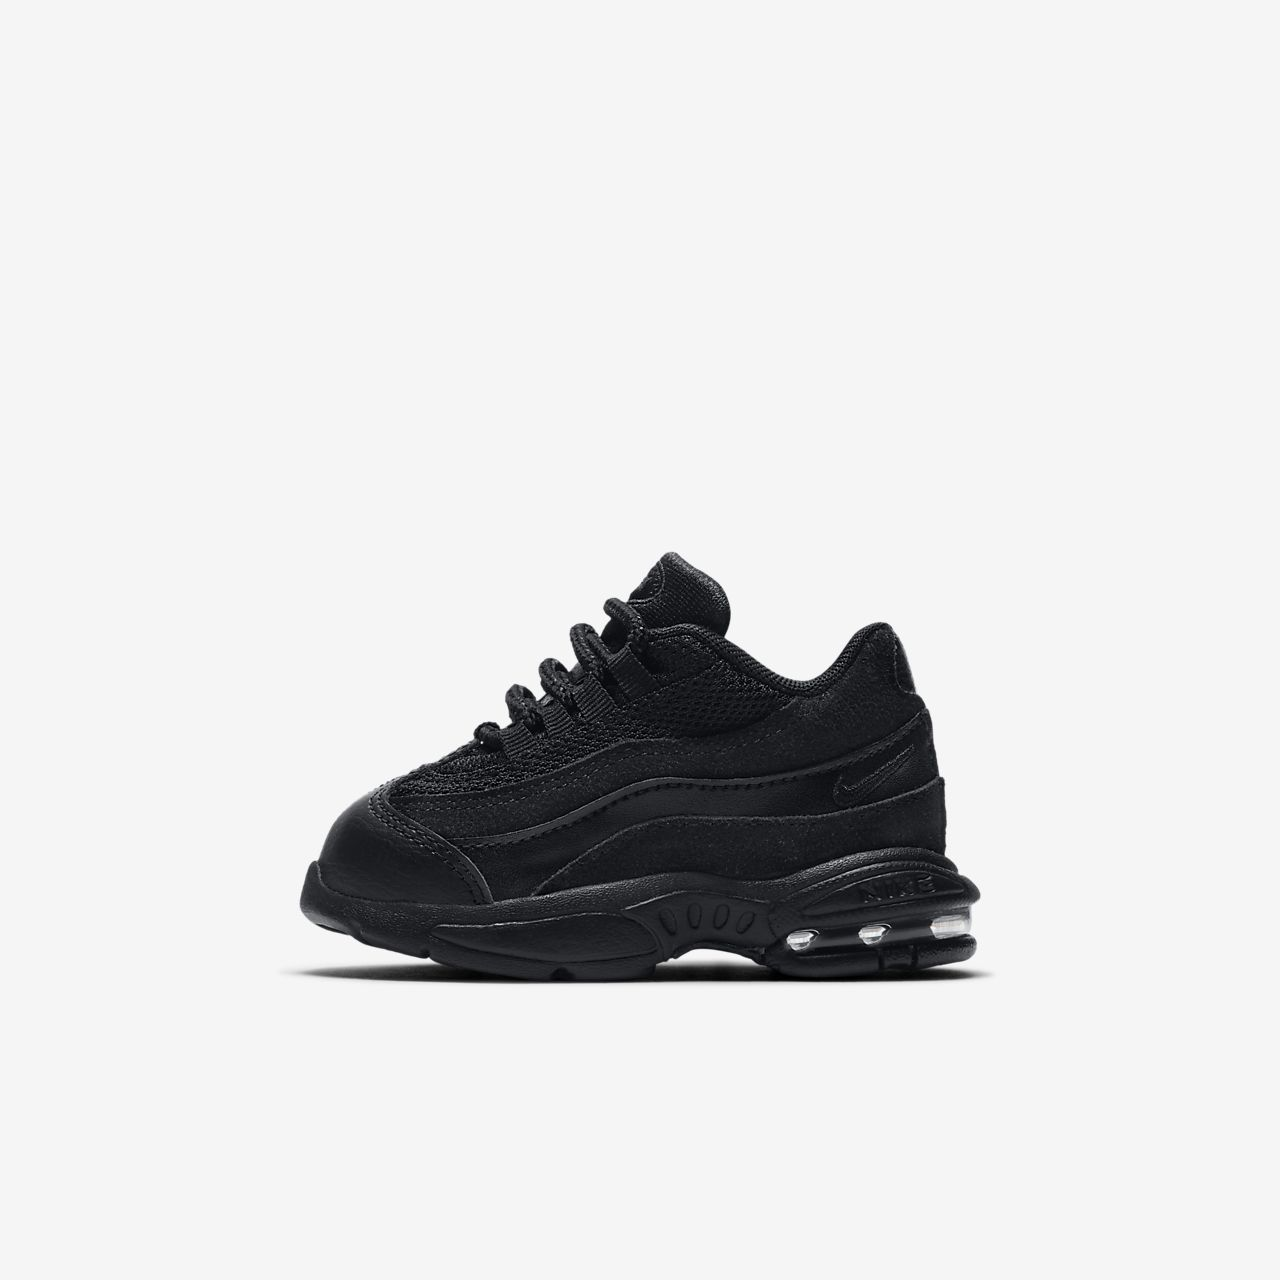 To acquire Camo air max 95 360 nike pictures trends